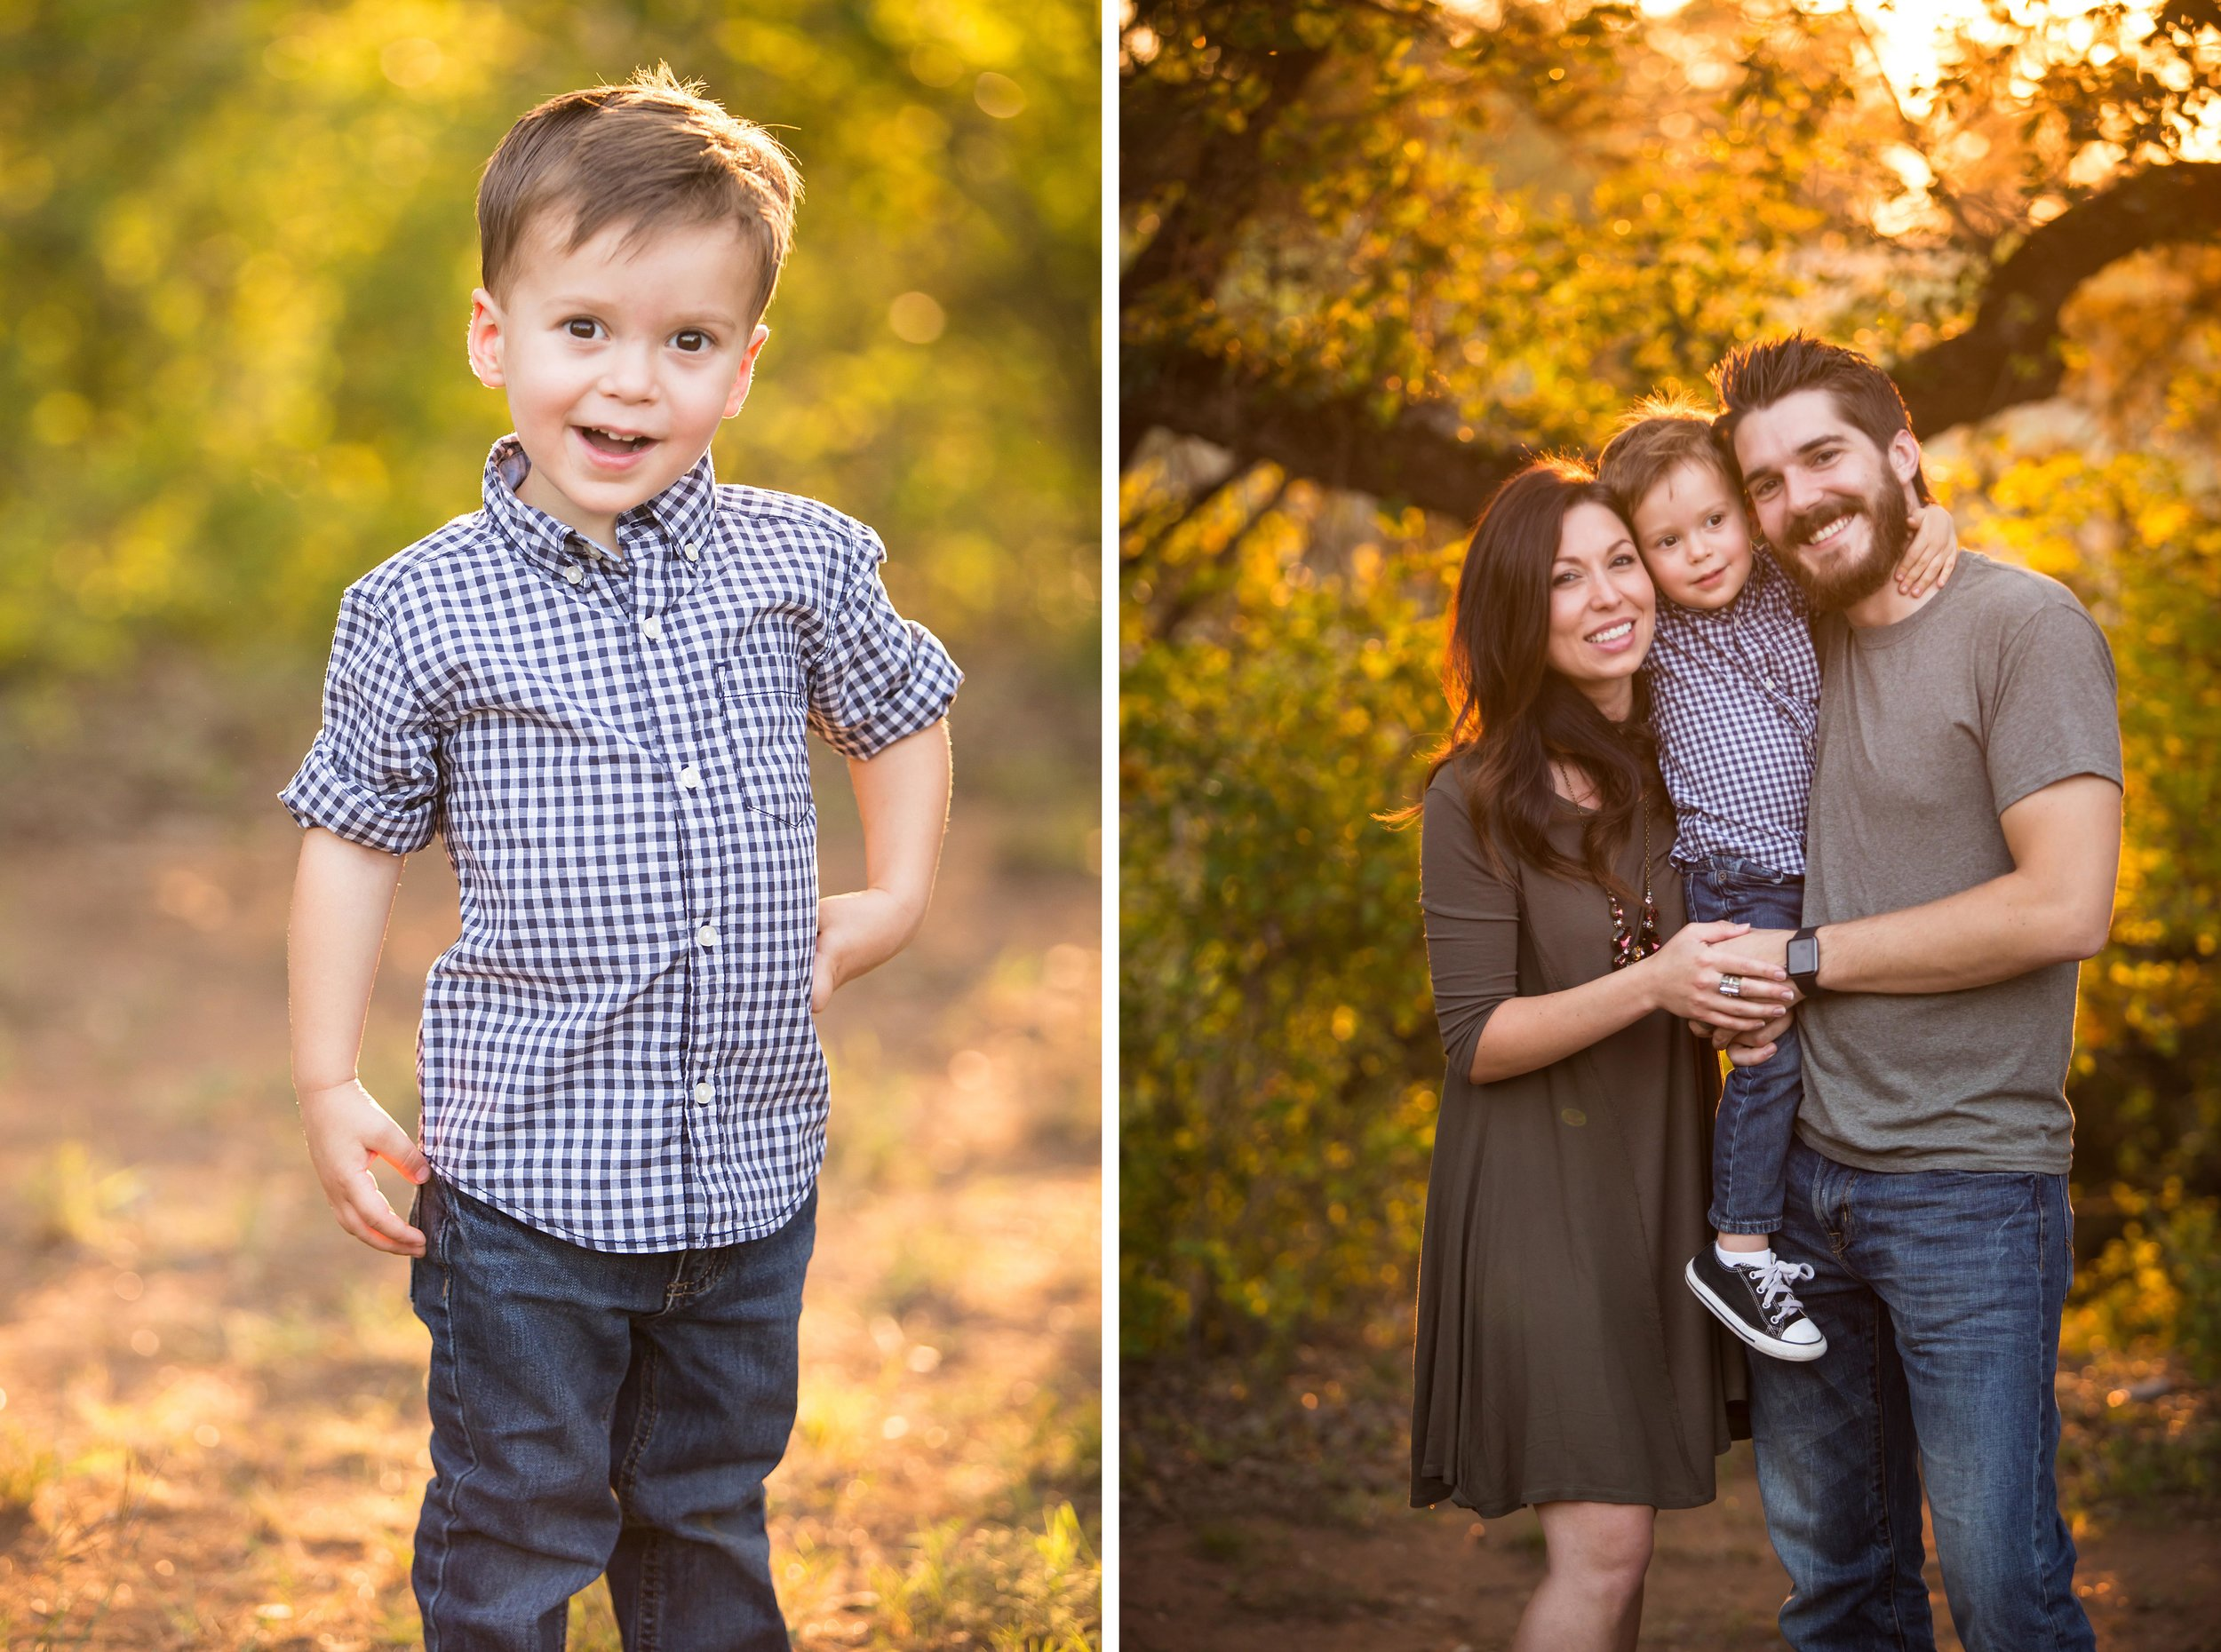 Marble_Falls_Stobaugh_Family_Photographer_Jenna_Petty_14.jpg